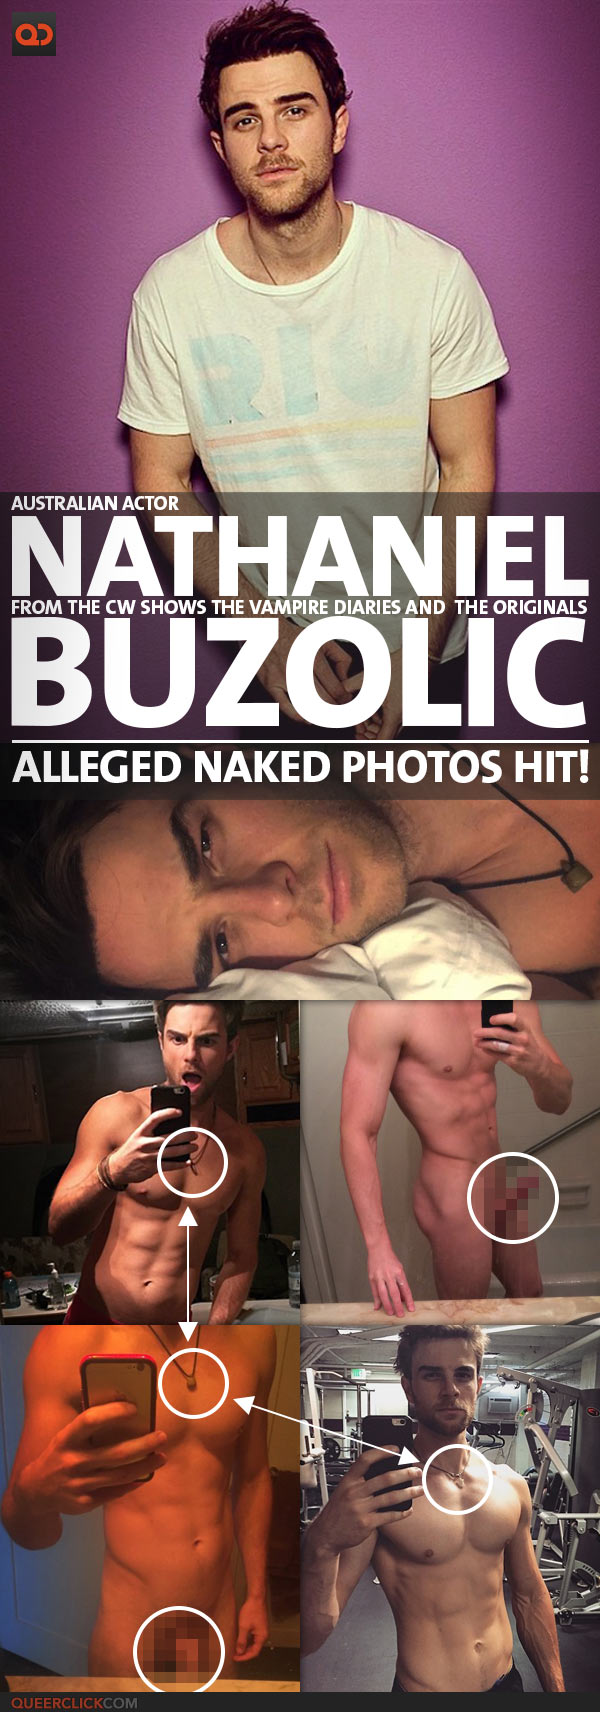 Nathaniel Buzolic, Australian Actor From The CW Shows The Vampire Diaries And The Originals, Alleged Naked Photos Hit!